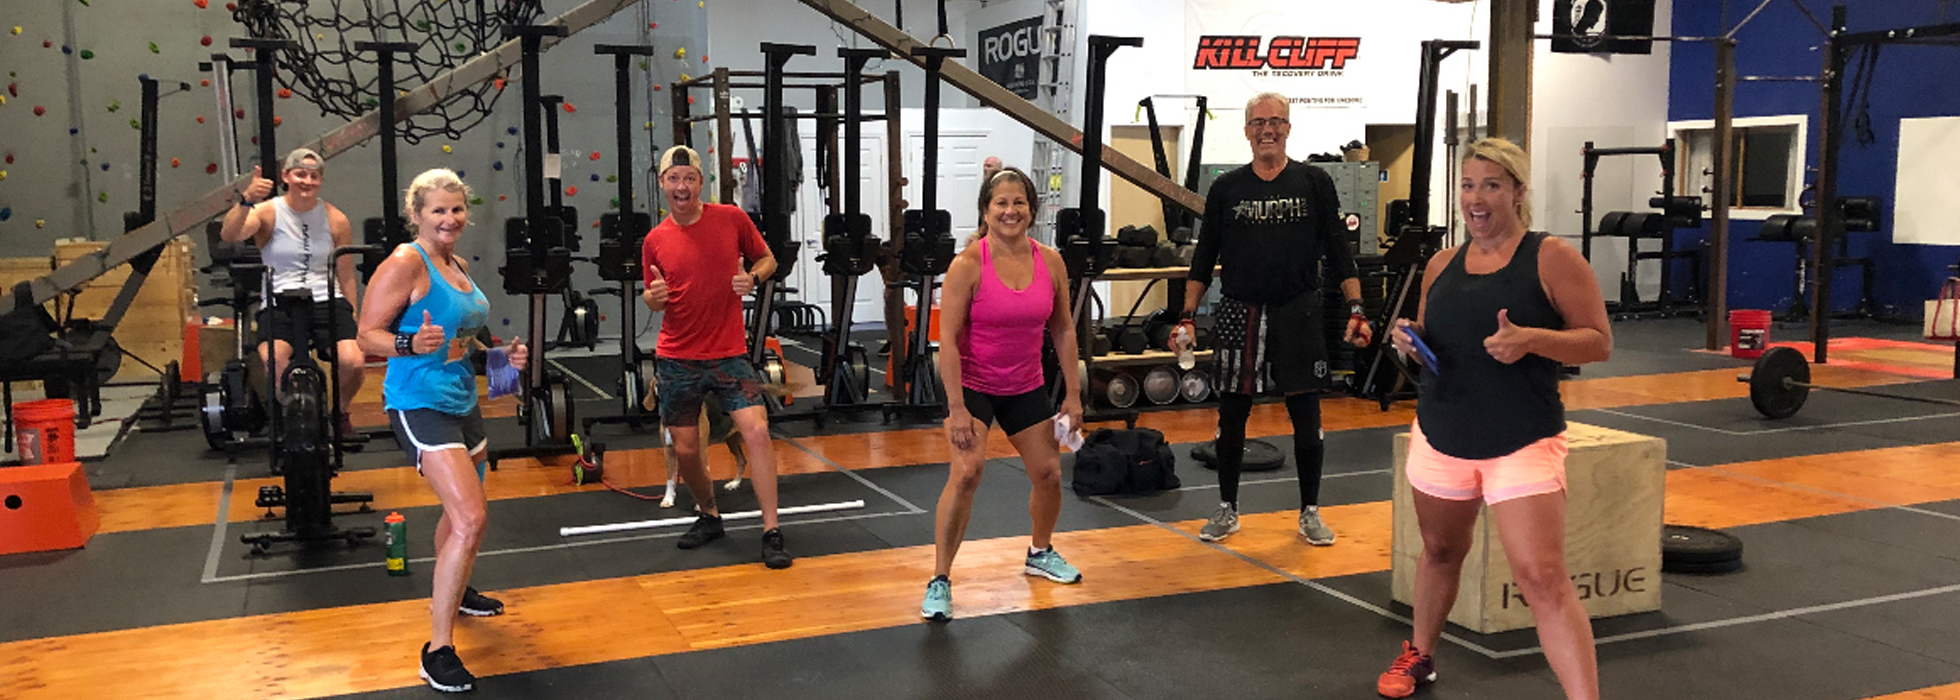 Why CrossFit Cape Cod is Ranked One Of The Best Gyms near Mashpee MA, Why CrossFit Cape Cod is Ranked One Of The Best Gyms near Cape Cod MA, Why CrossFit Cape Cod is Ranked One Of The Best Gyms near Falmouth MA, Why CrossFit Cape Cod is Ranked One Of The Best Gyms near Bourne MA, Why CrossFit Cape Cod is Ranked One Of The Best Gyms near Sandwich MA